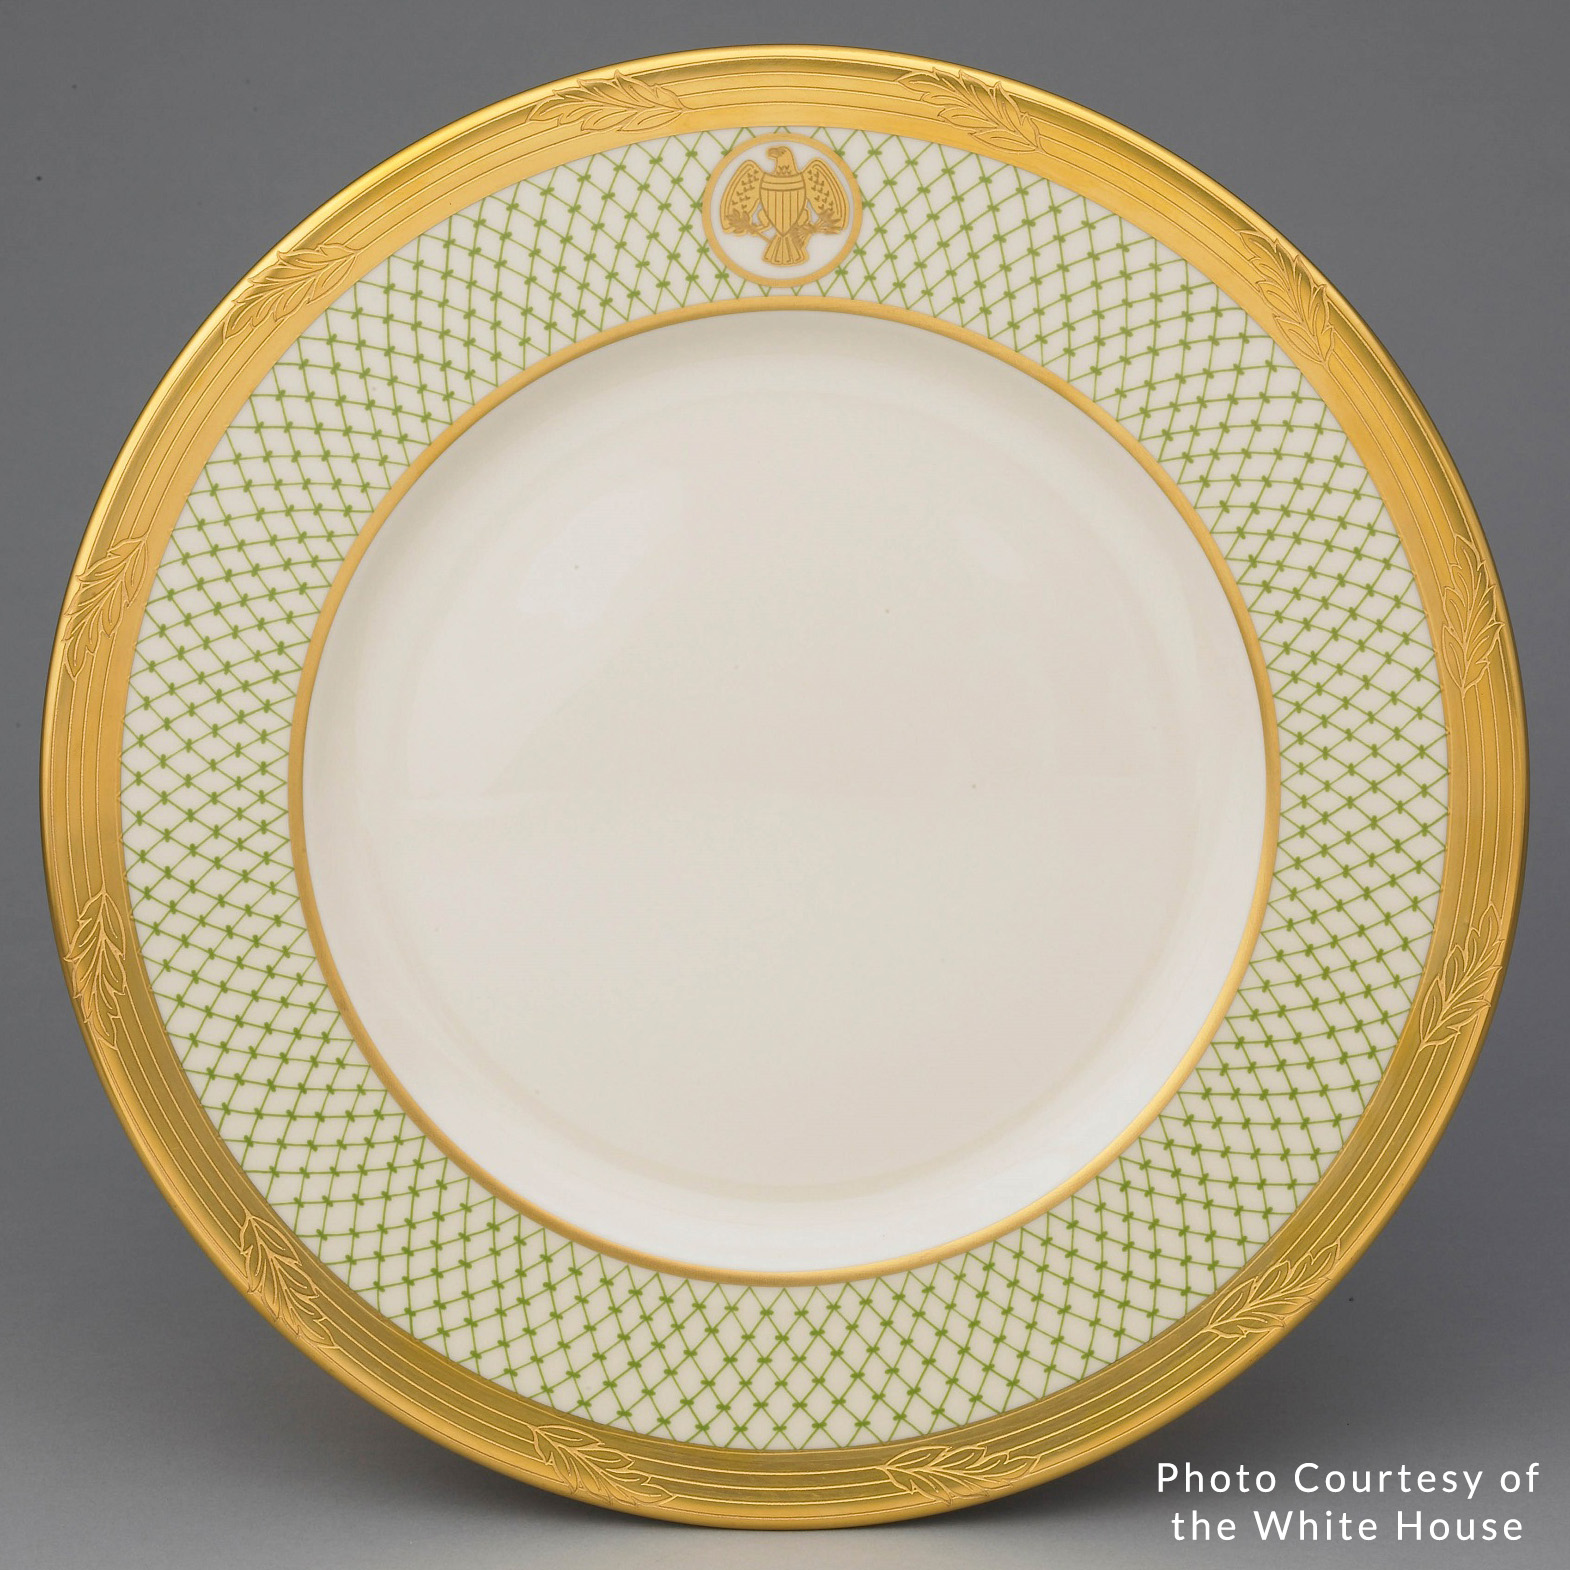 Dinner plate from George and Laura Bush's White House China collection